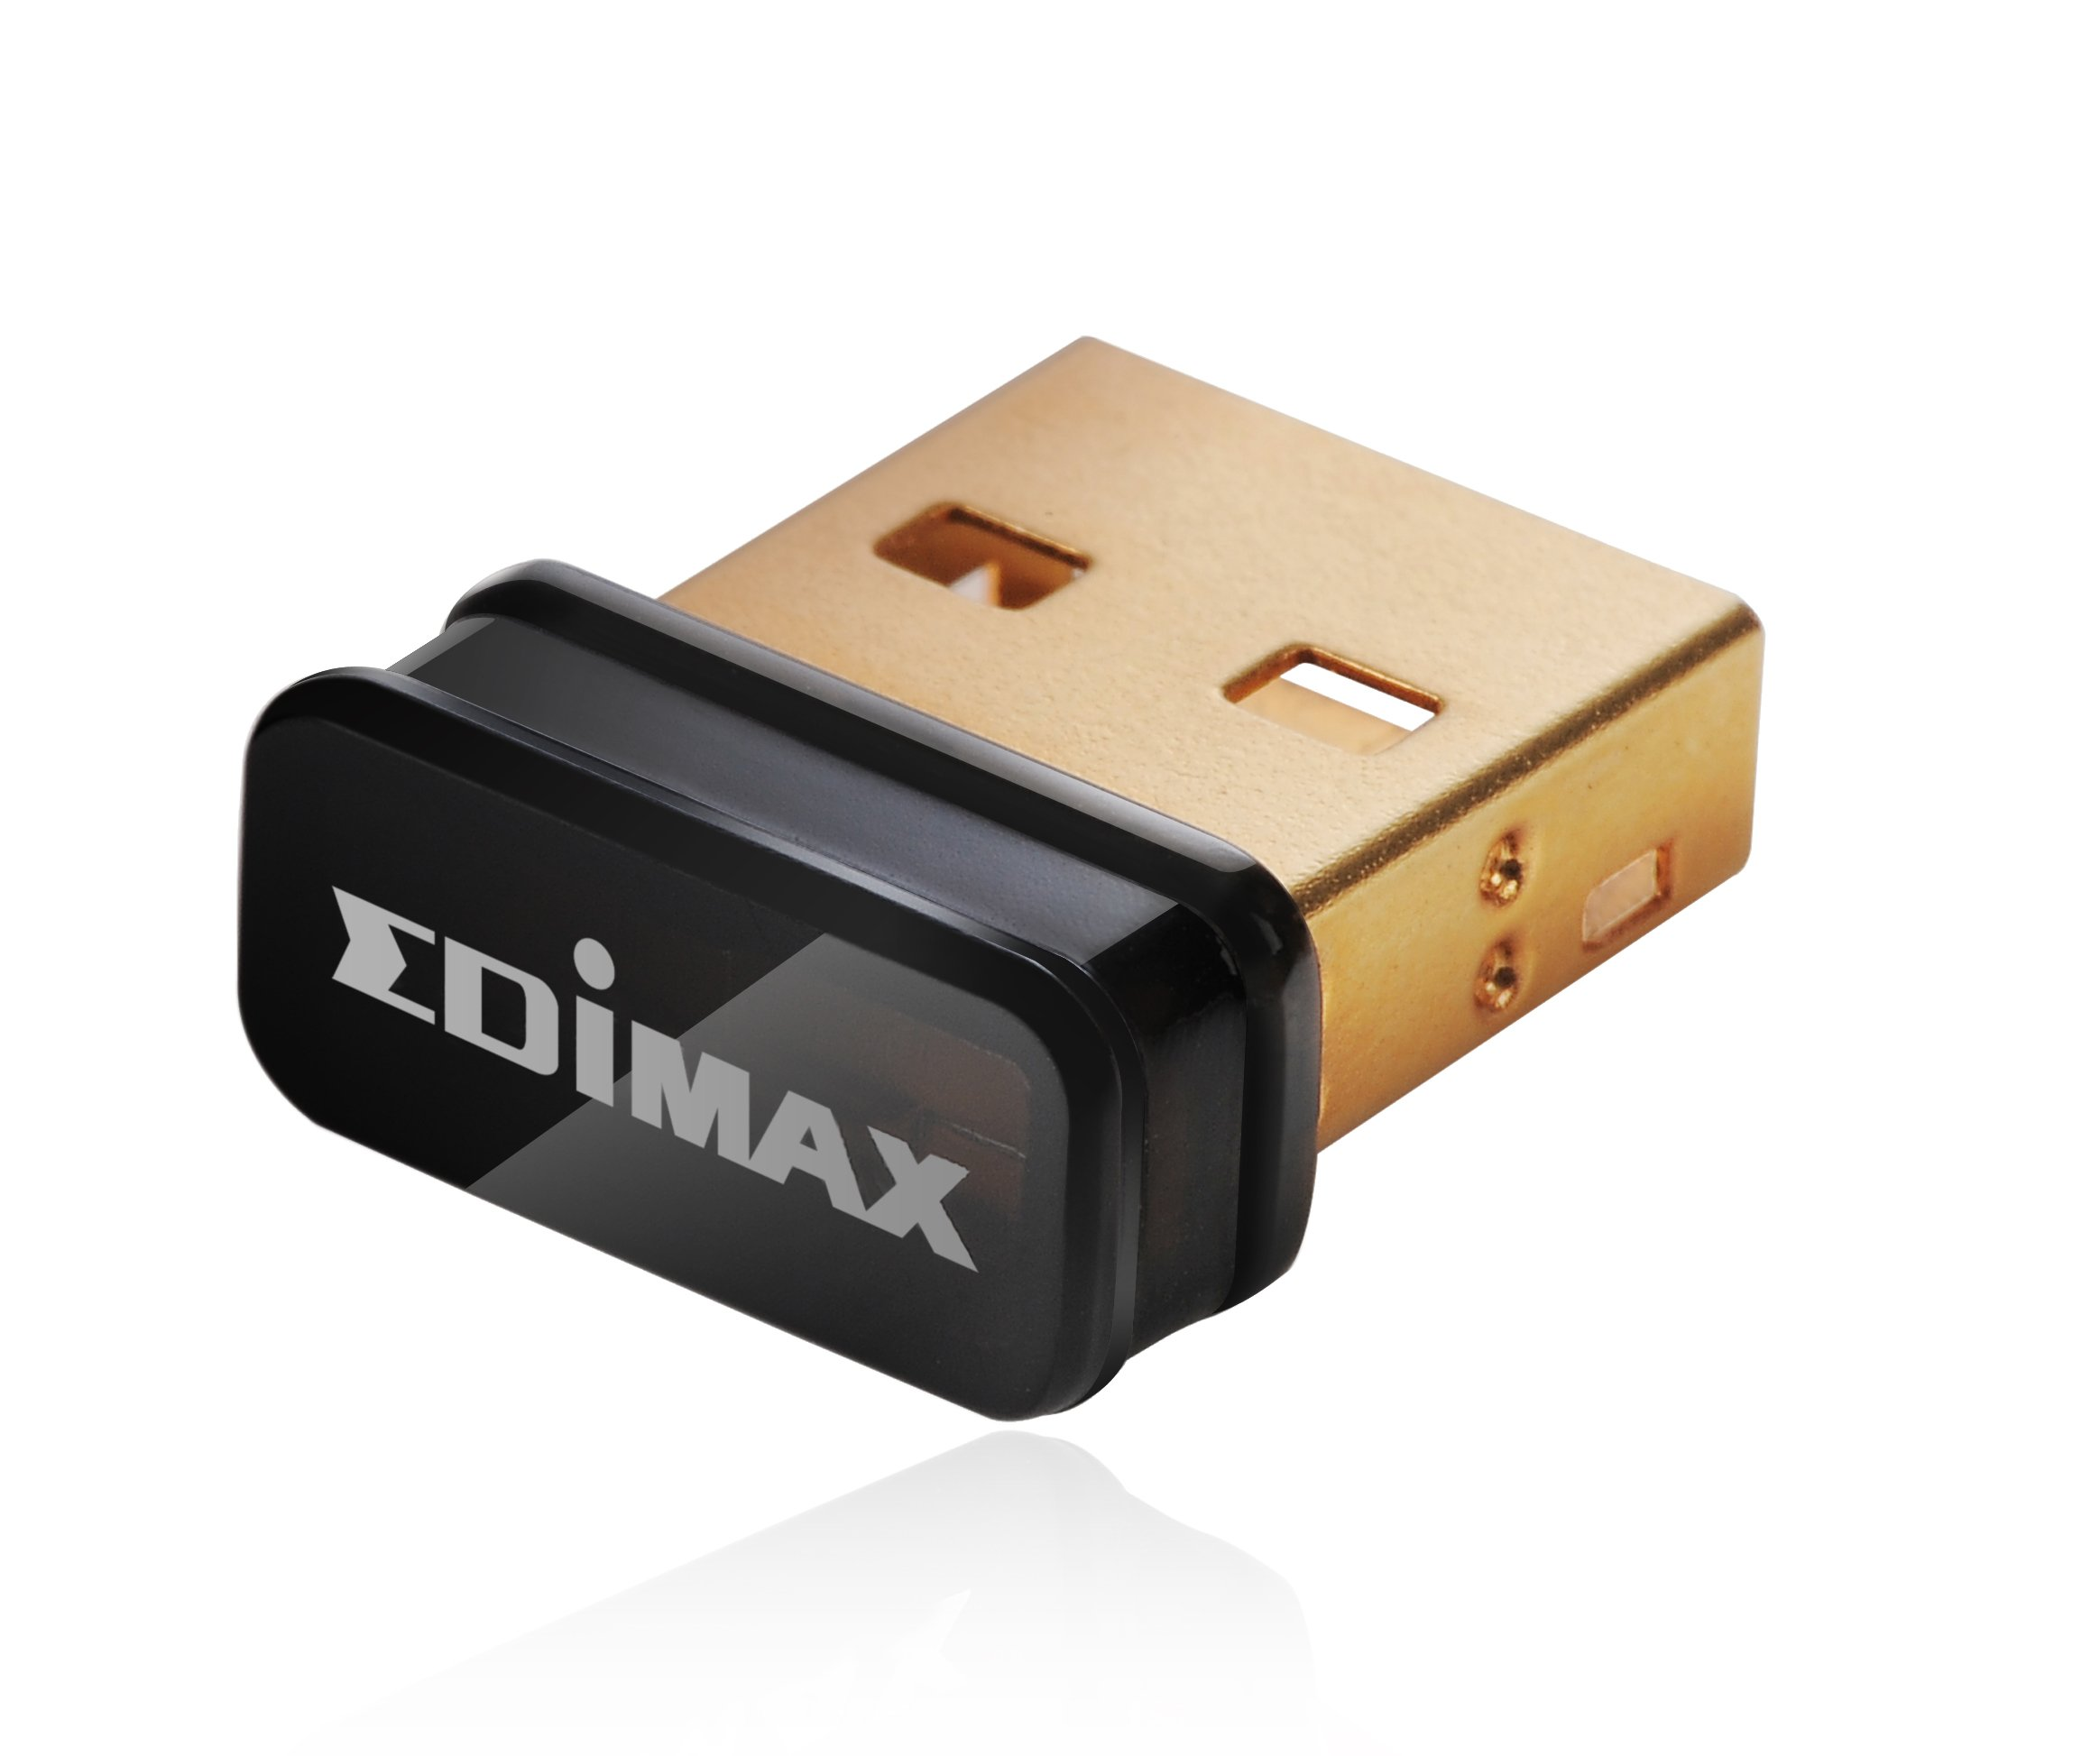 Edimax EW-7811Un 150Mbps 11n Wi-Fi USB Adapter, Nano Size Lets You Plug it and Forget it, Ideal for Raspberry Pi / Pi2, Supports Windows, Mac OS, Linux (Black/Gold) by Edimax